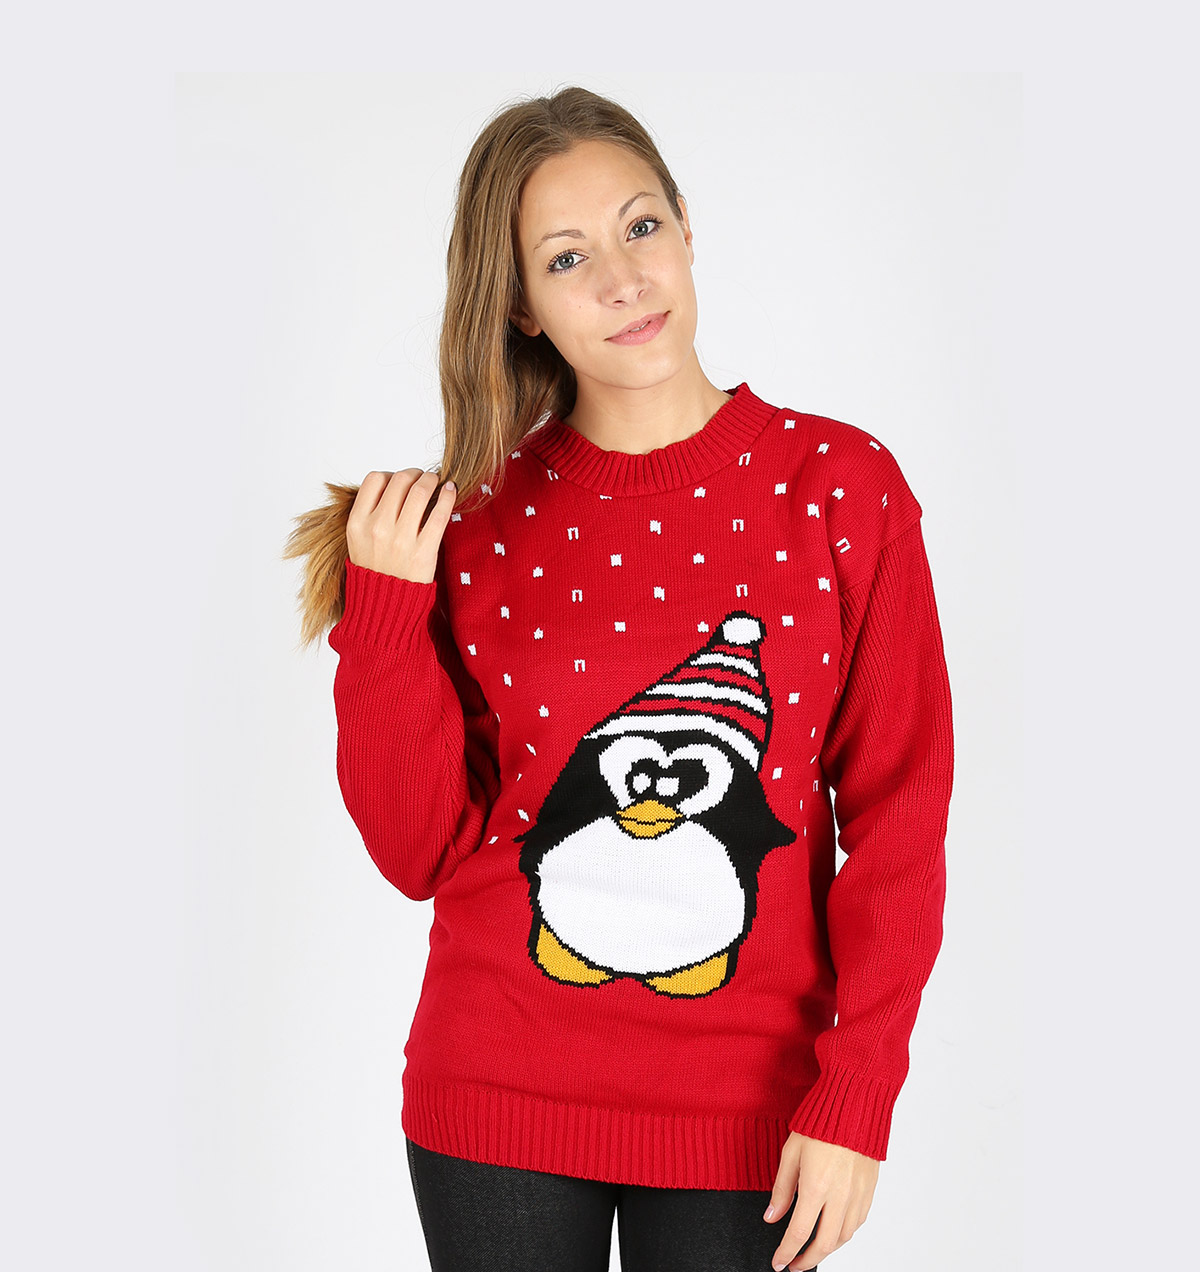 Christmas sweater sale